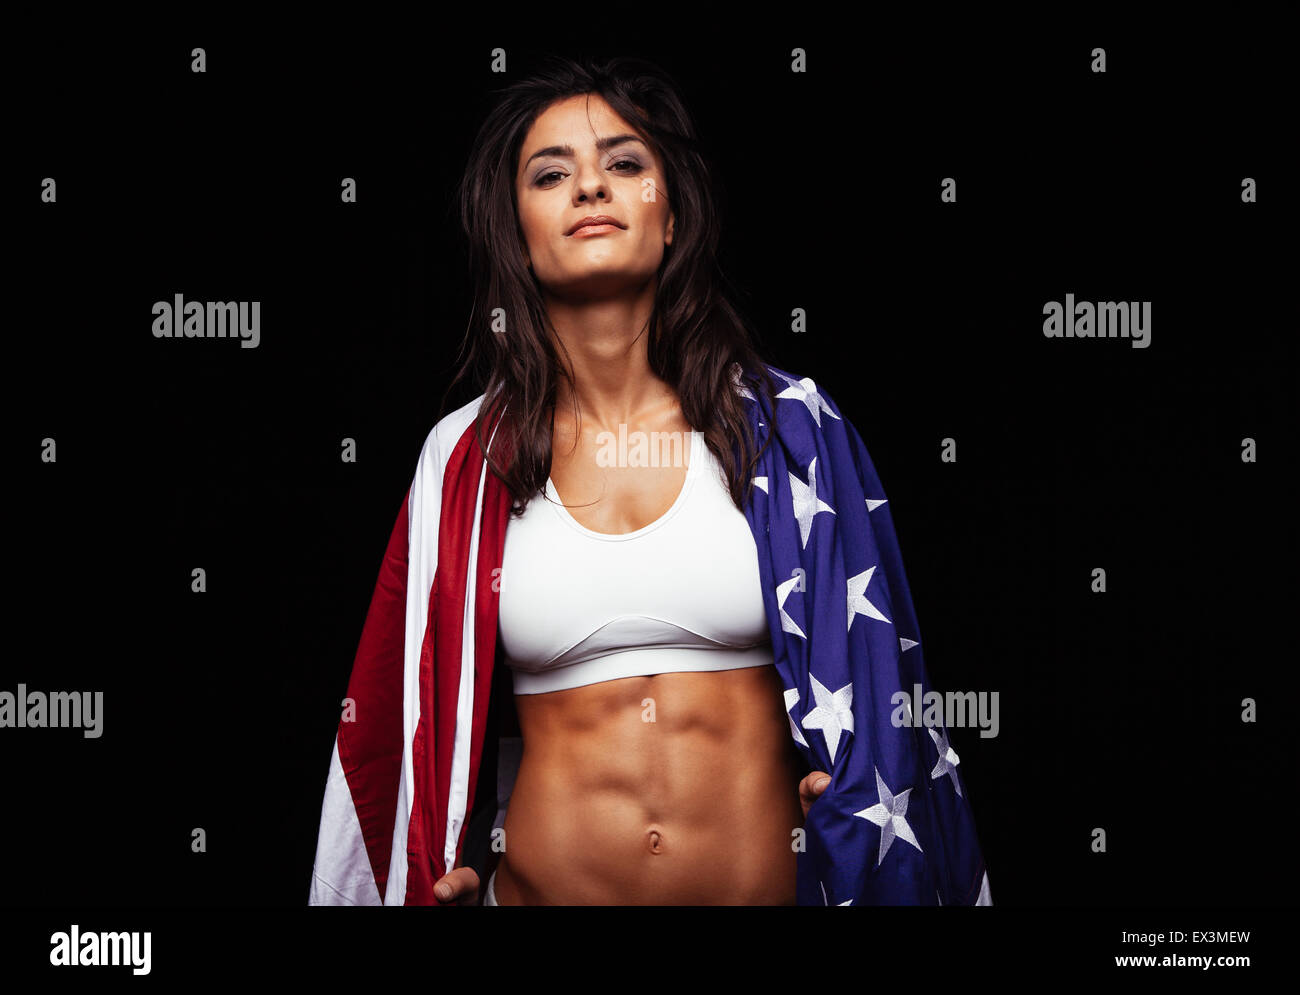 Portrait of proud female athlete wrapped in American Flag against black background. Muscular young woman looking - Stock Image